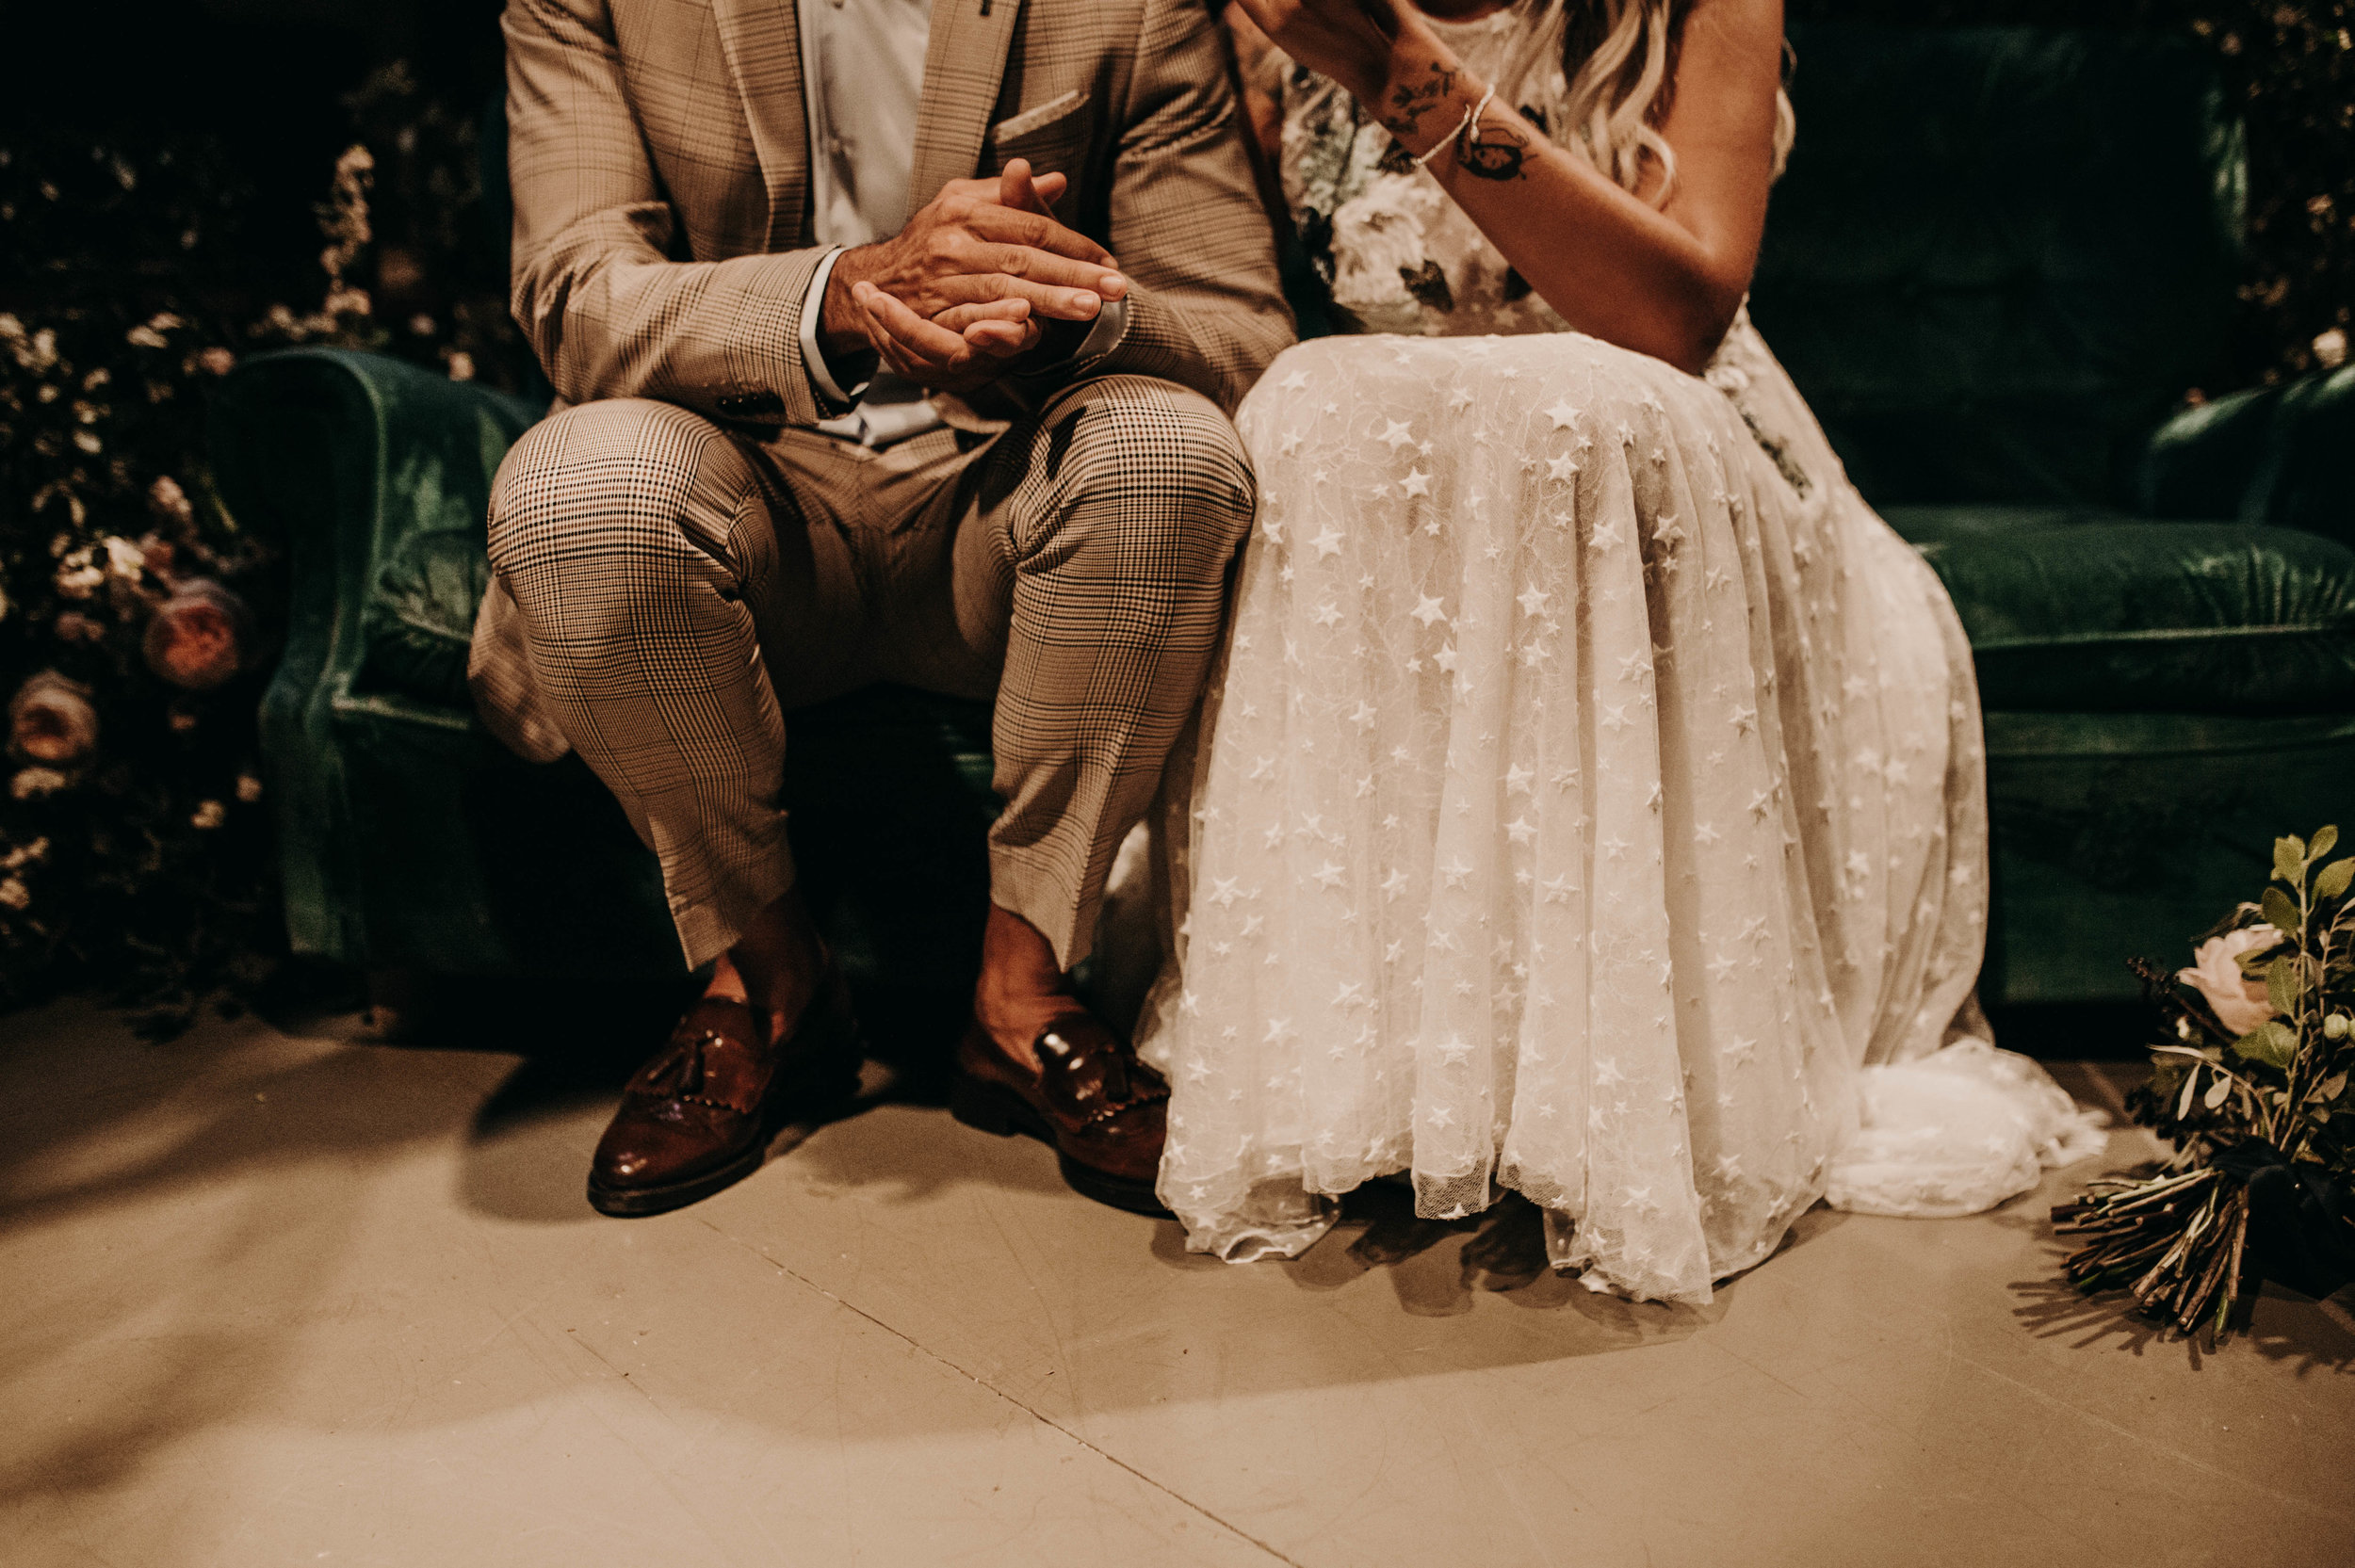 thenortherngirlphotography_bodasindustriales_bodasdiferentes_weddingphotographer_spanishphotographer_spanisgweddingphotographer_happyendings_mercantic_elsiglomercantic_antichrist_love_neon_weddingtattoo_CYNTHIAMANOLO-380.jpg